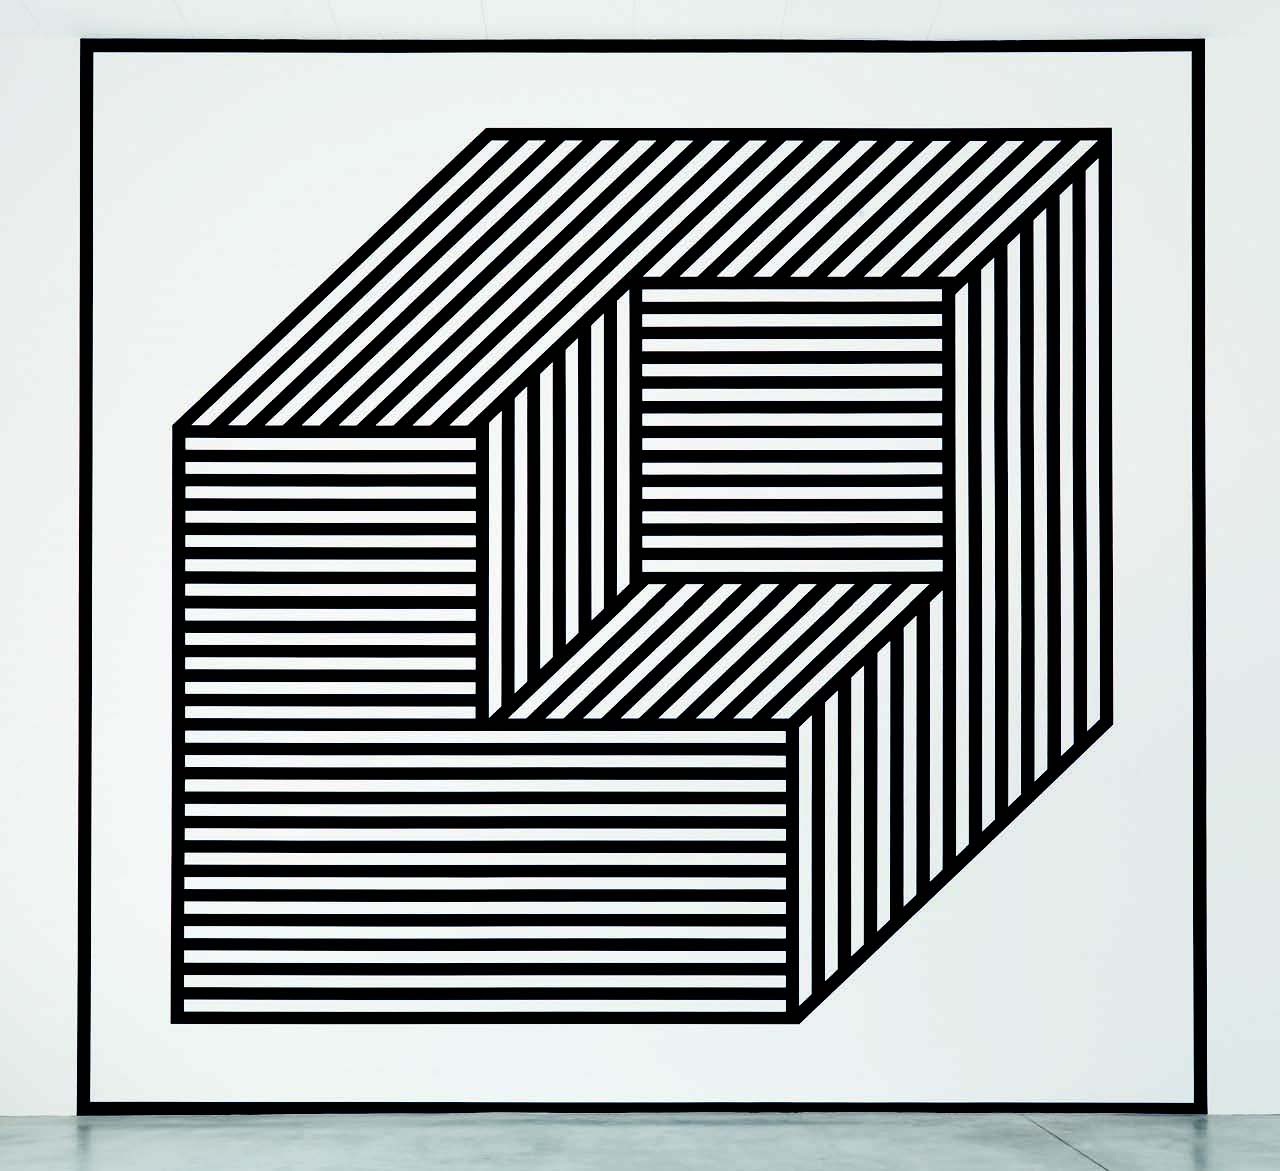 """Wall Drawing # 356 BB"" (2003), installed at the Hirshhorn Museum of Art and Sculpture Garden, Smithsonian Institution, Washington, D.C., is reproduced from ""Sol LeWitt"" distributed for JRP